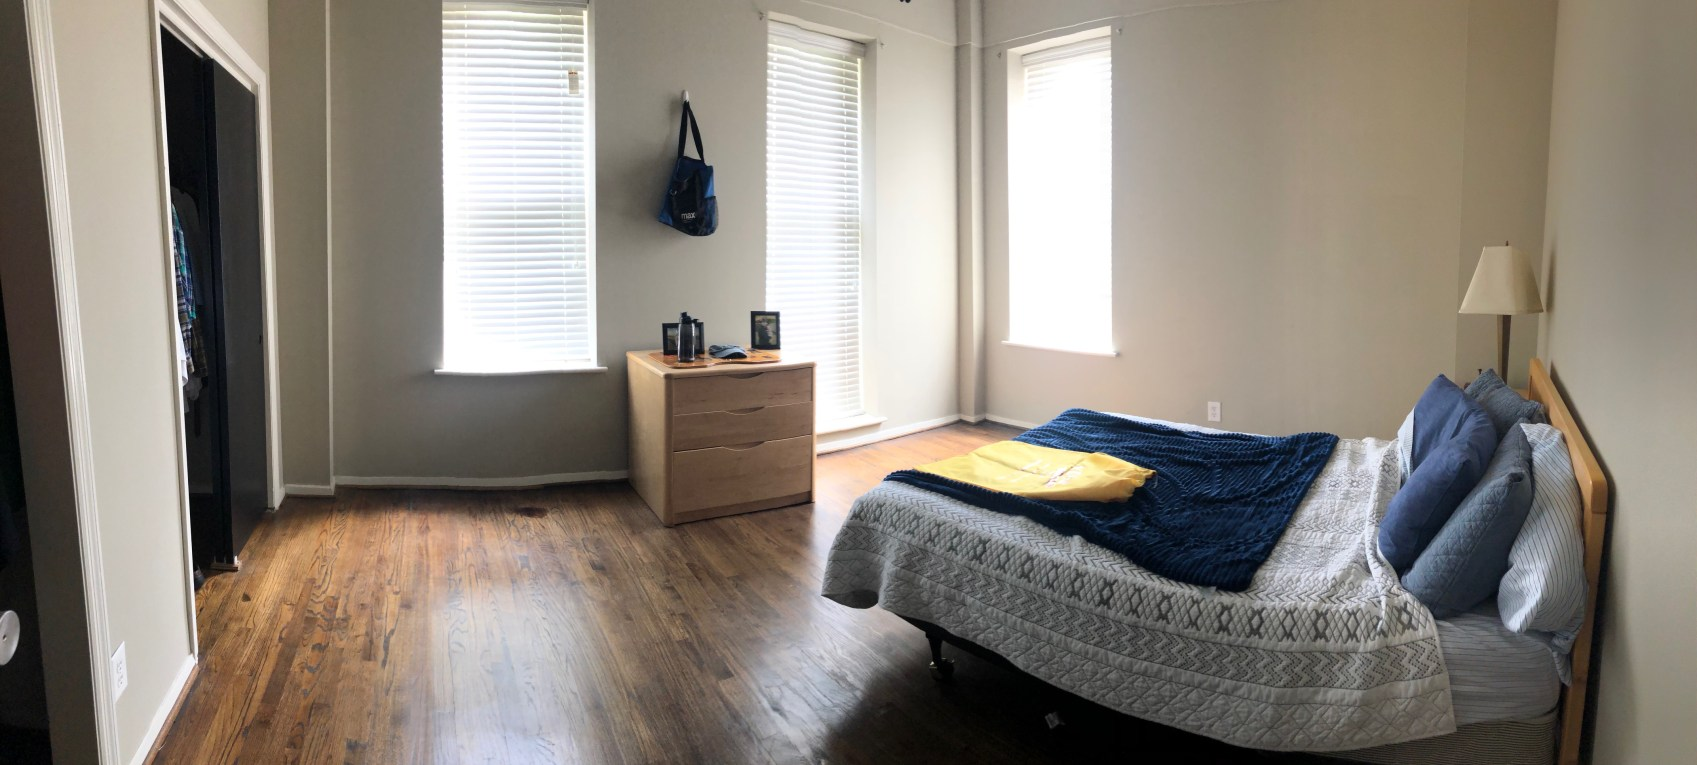 Student Apartment - Bedroom